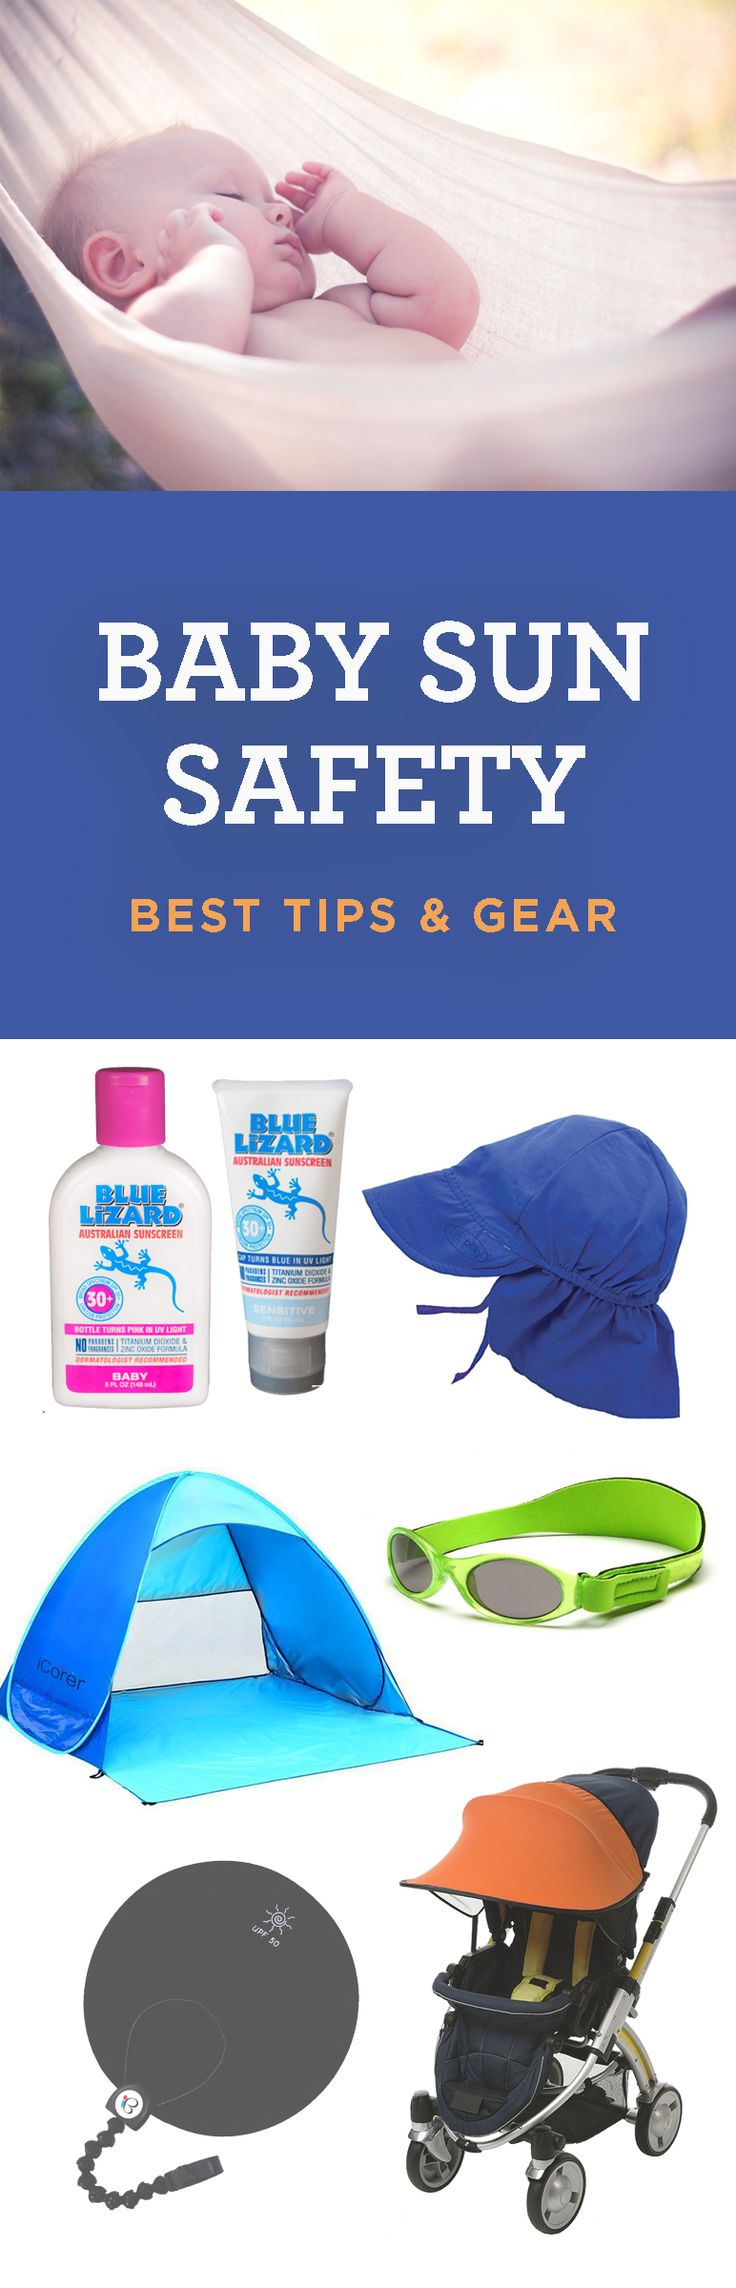 Amazing tips on how to protect your baby from the sun. Includes sunscreen know-how, stroller shades, UV clothing and hats they can't toss. If you have a newborn this summer, definitely check it out!